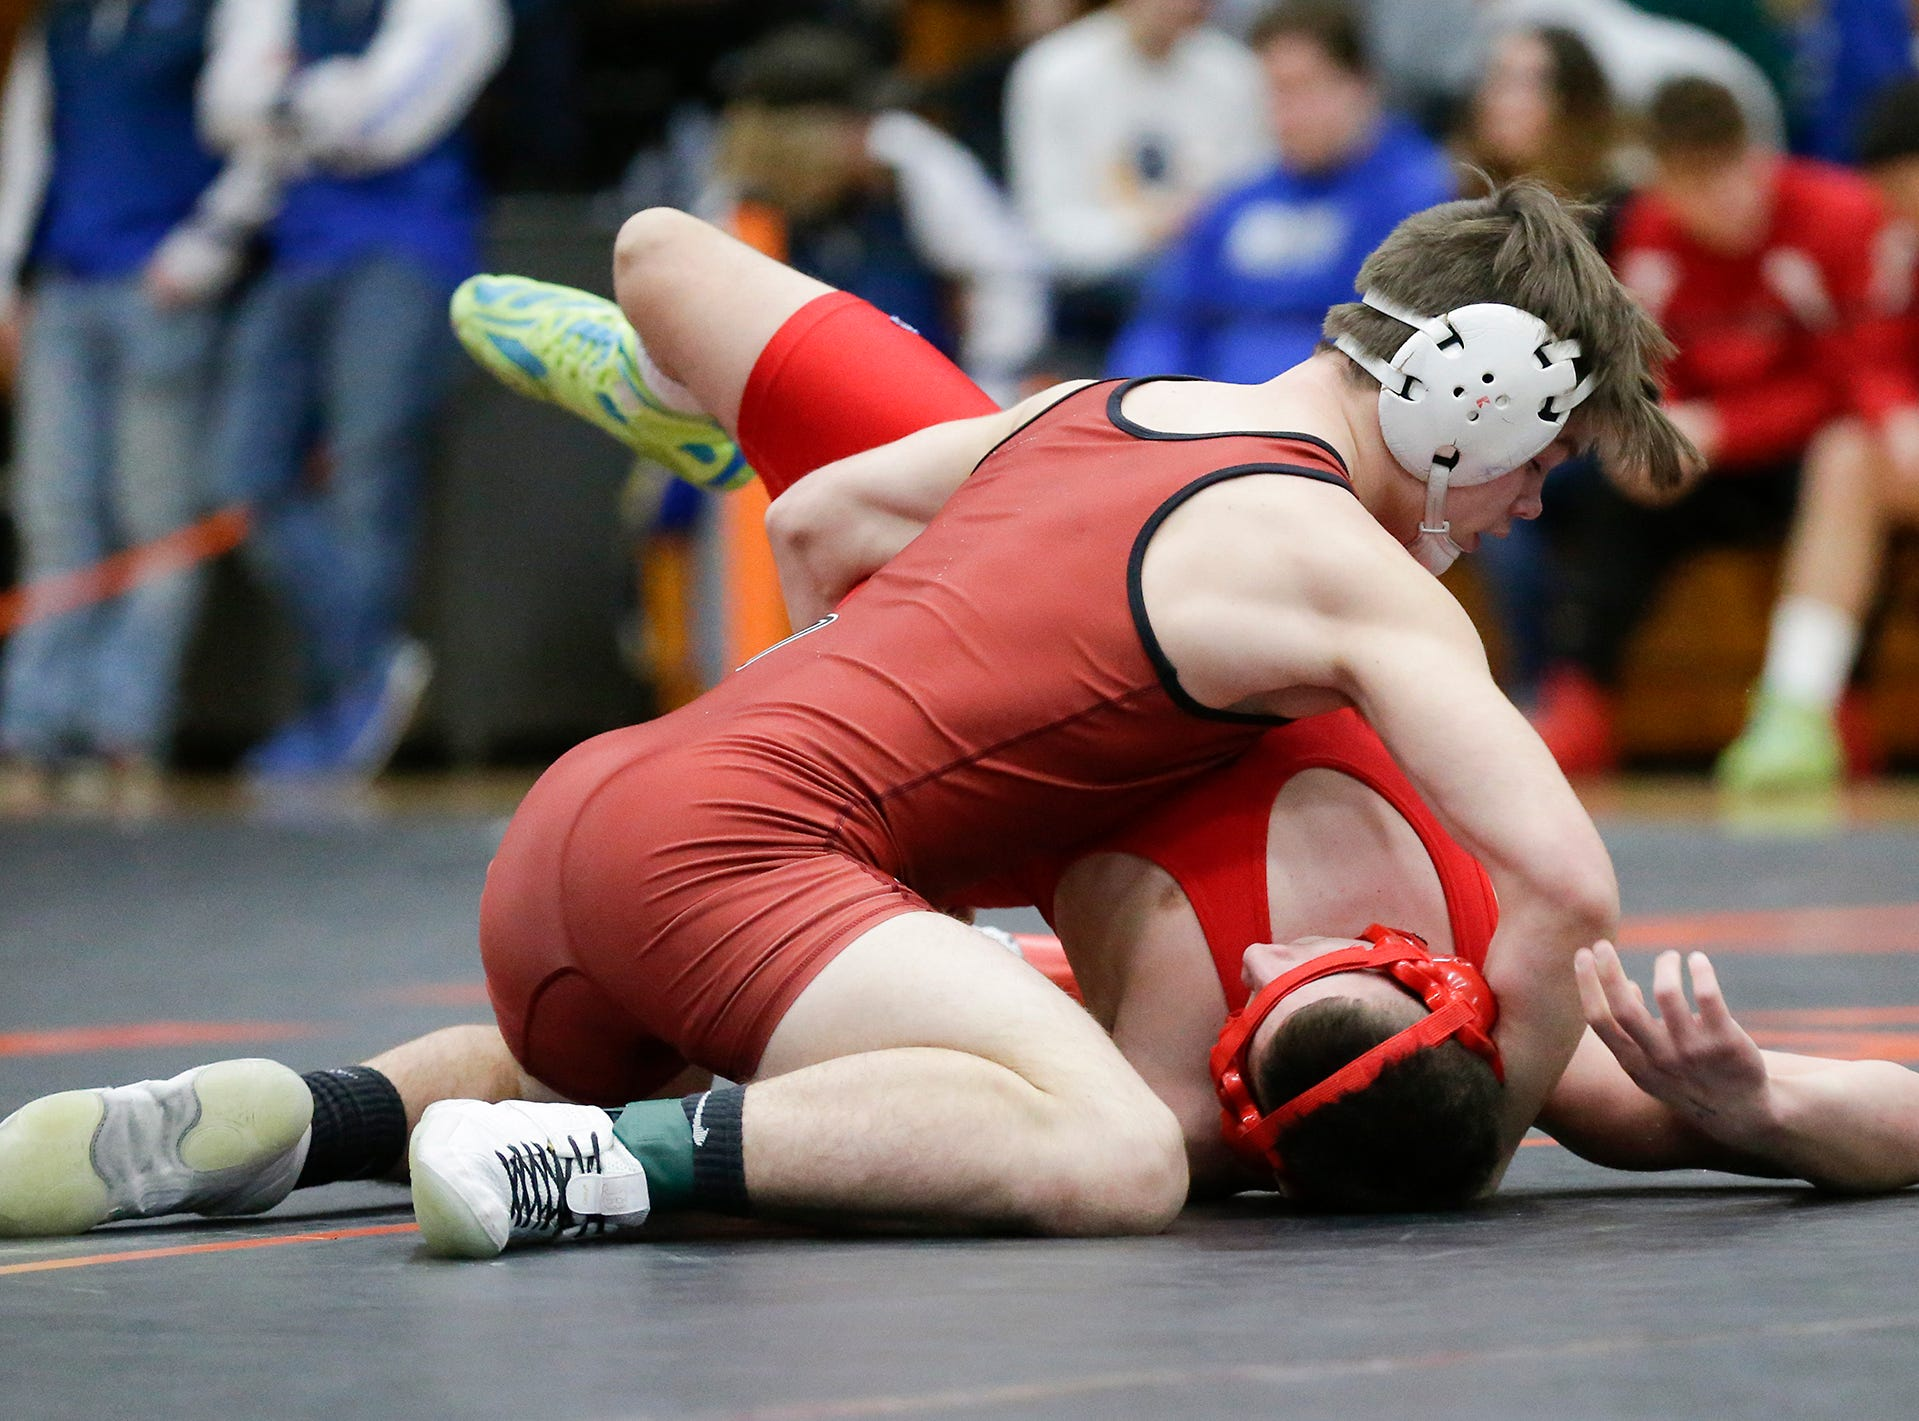 Josiah Streblow of Fond du Lac High School wrestles Guy Tamim ofHomestead  High School in the 152 pound weight class during the WIAA sectionals Saturday, February 16, 2019 in Hartford, Wis. Streblow won with a pin. Doug Raflik/USA TODAY NETWORK-Wisconsin